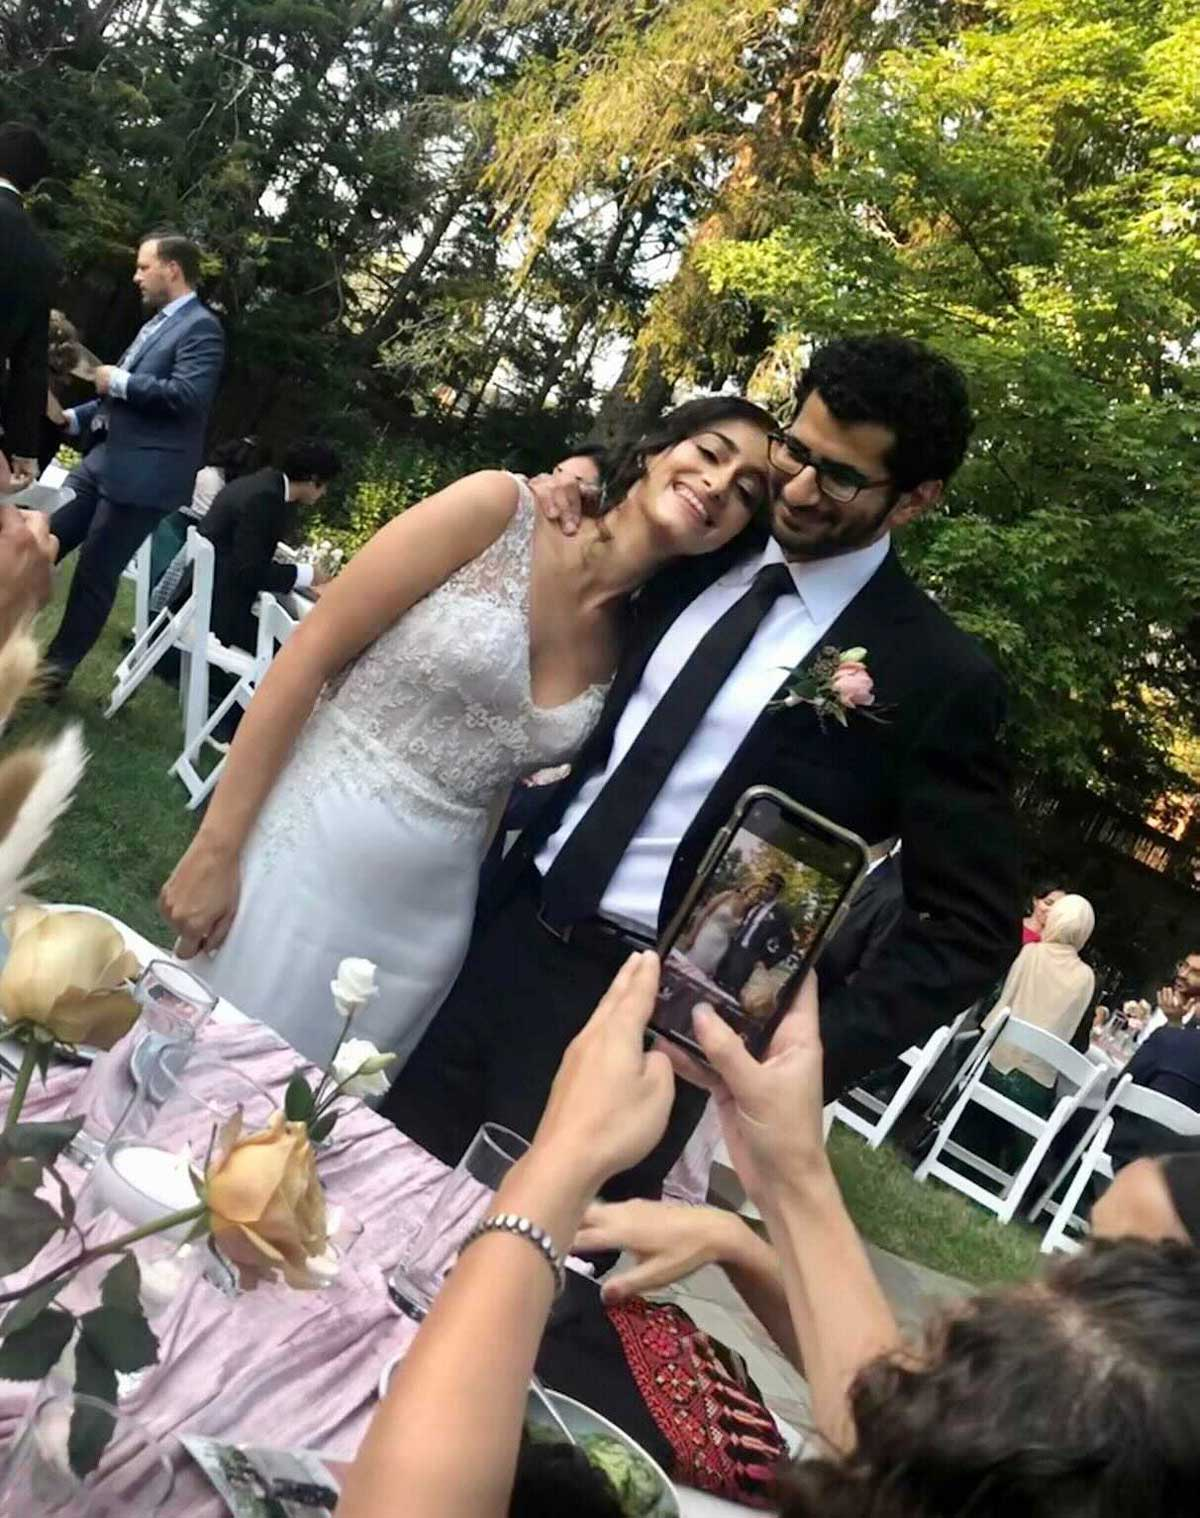 A candid photo of Reema and her new husband.